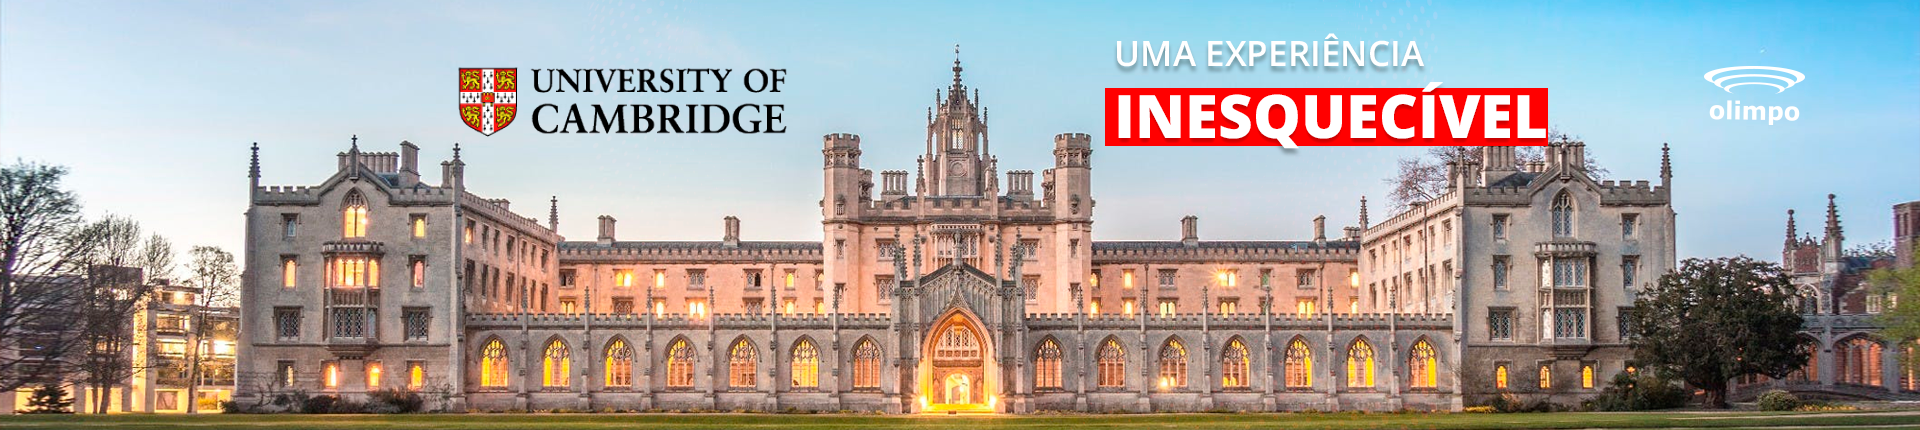 University Cambridge